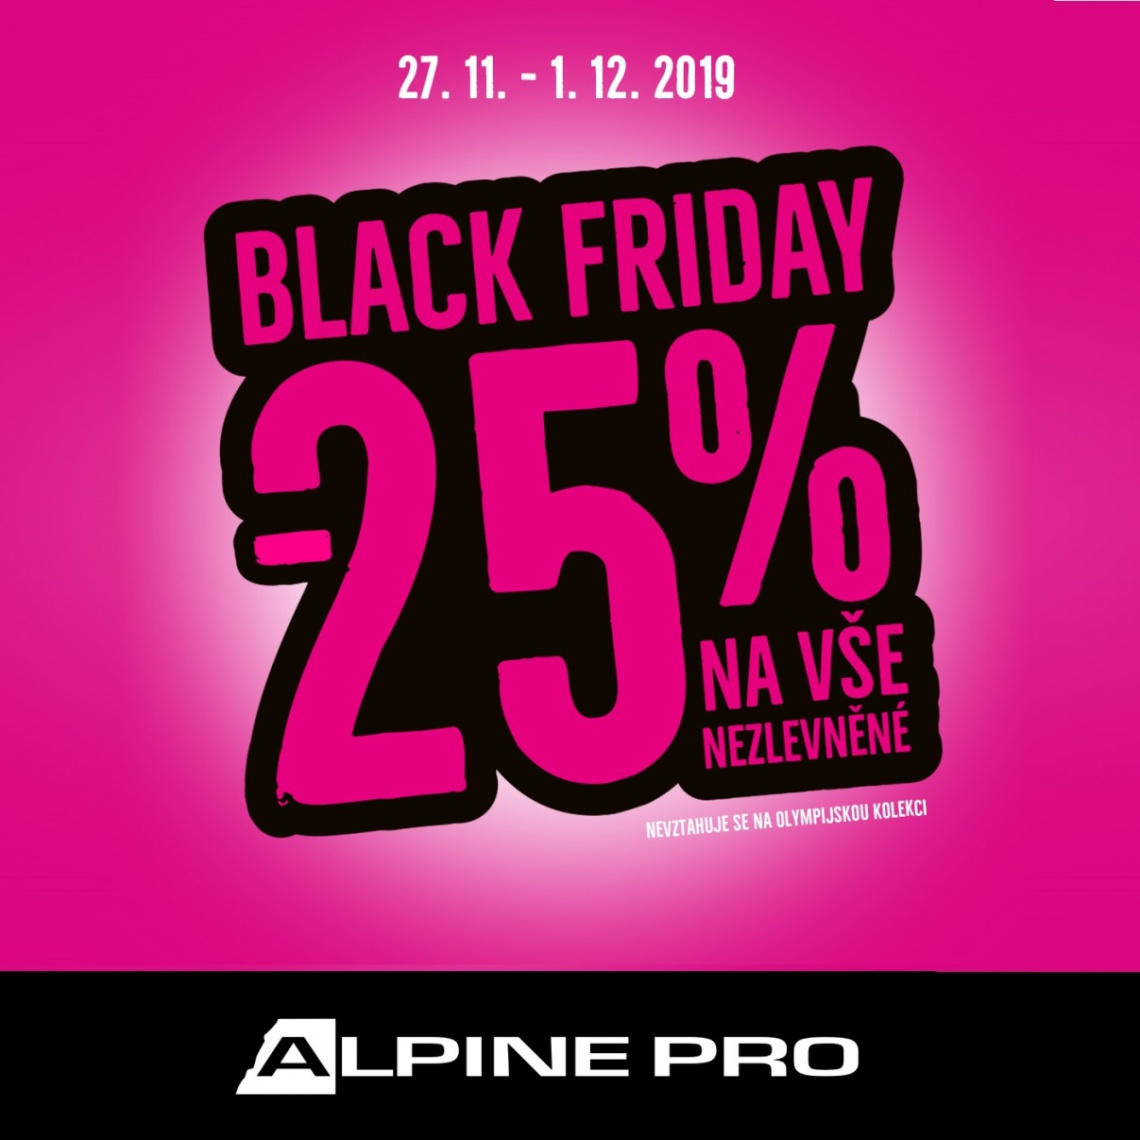 Black Friday v ALPINE PRO